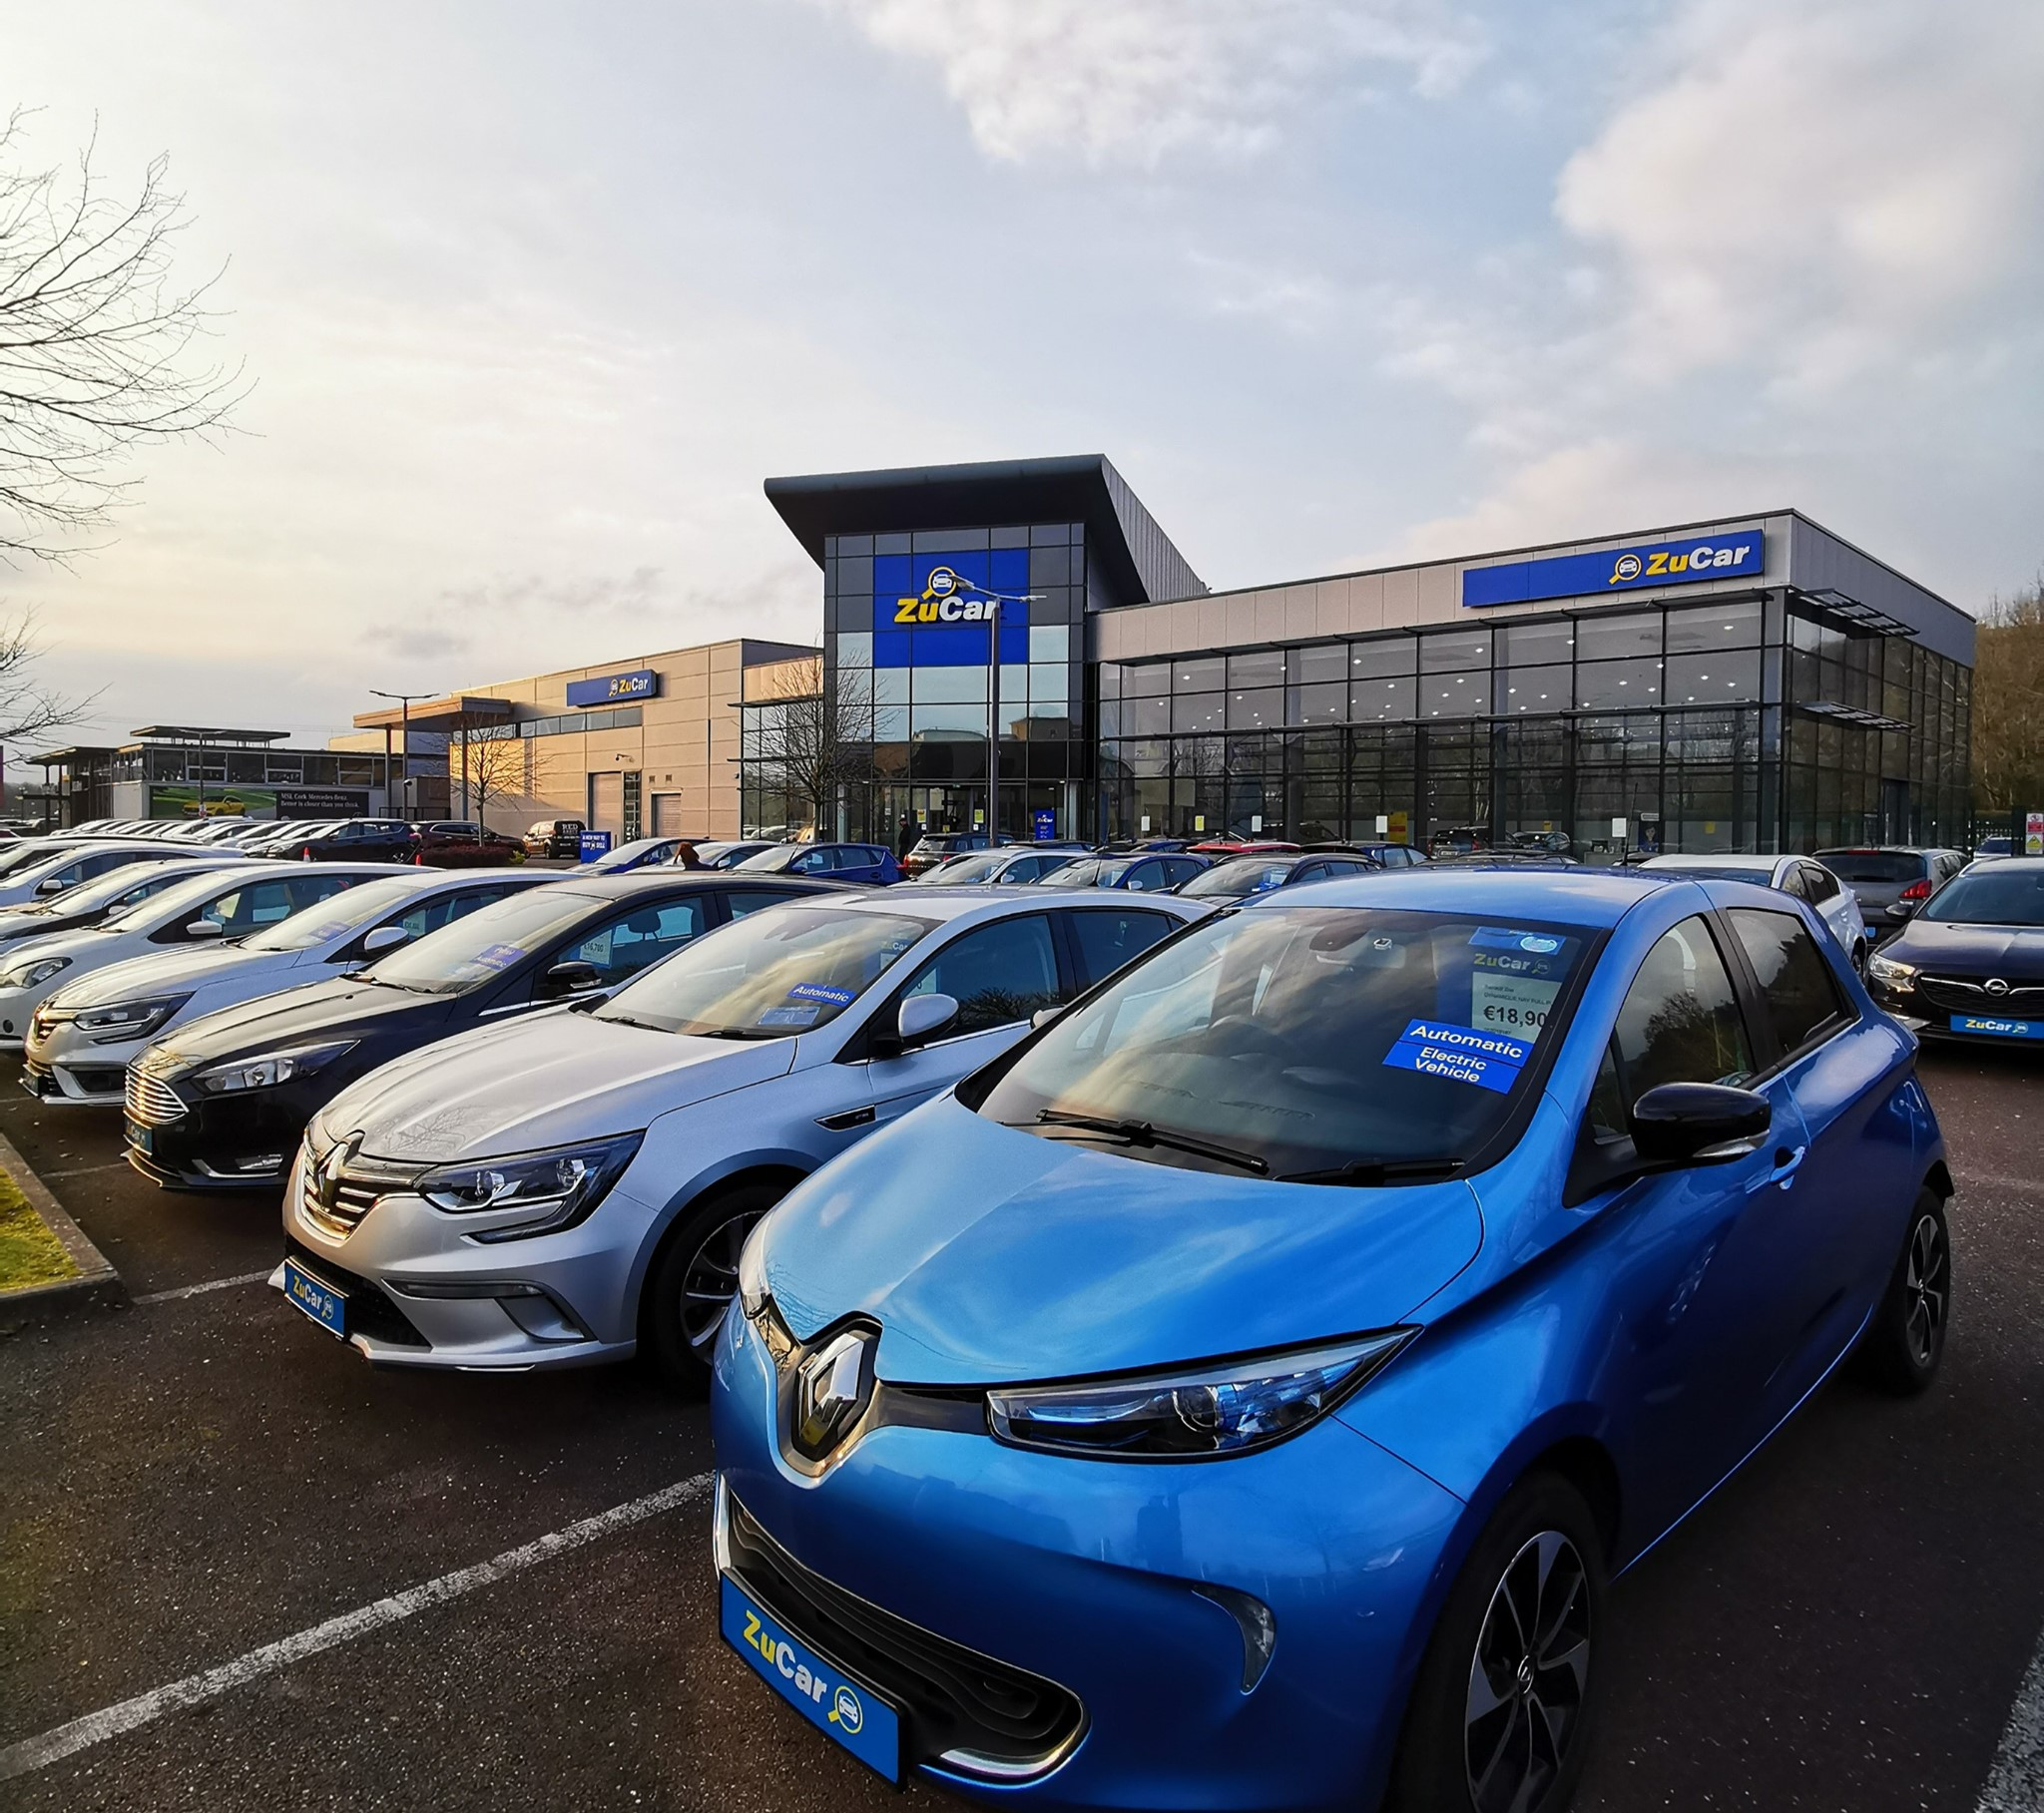 Used Cars For Sale Dublin Limerick Cork | Nationwide Delivery